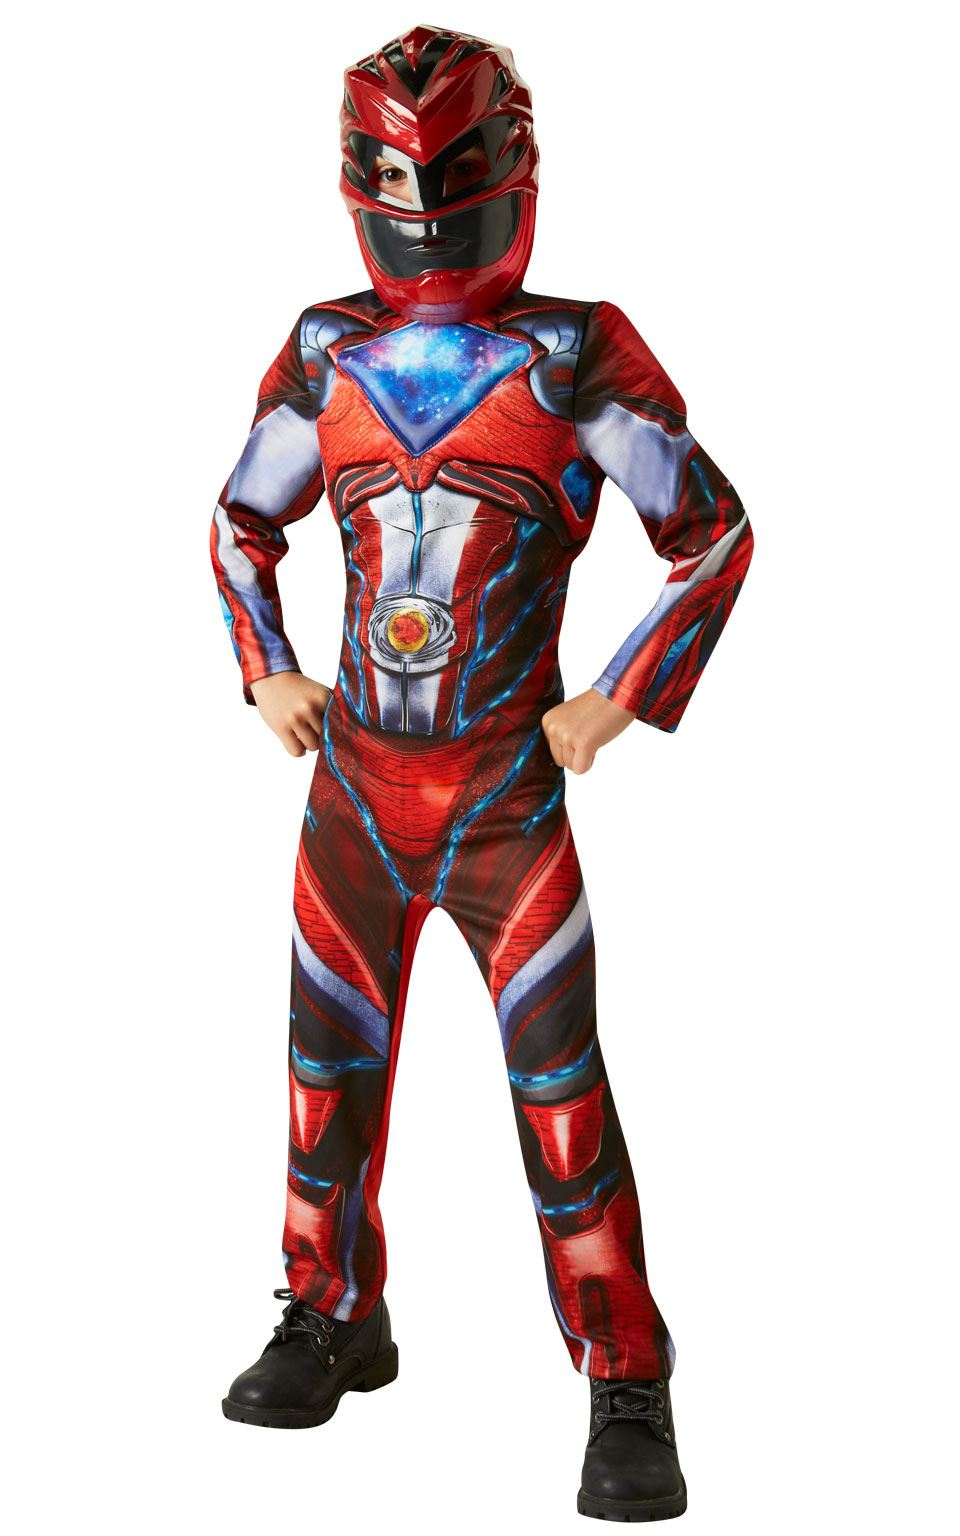 Boys Deluxe Power Rangers Movie Red Ranger Fancy Dress Child Kids Outfit | eBay